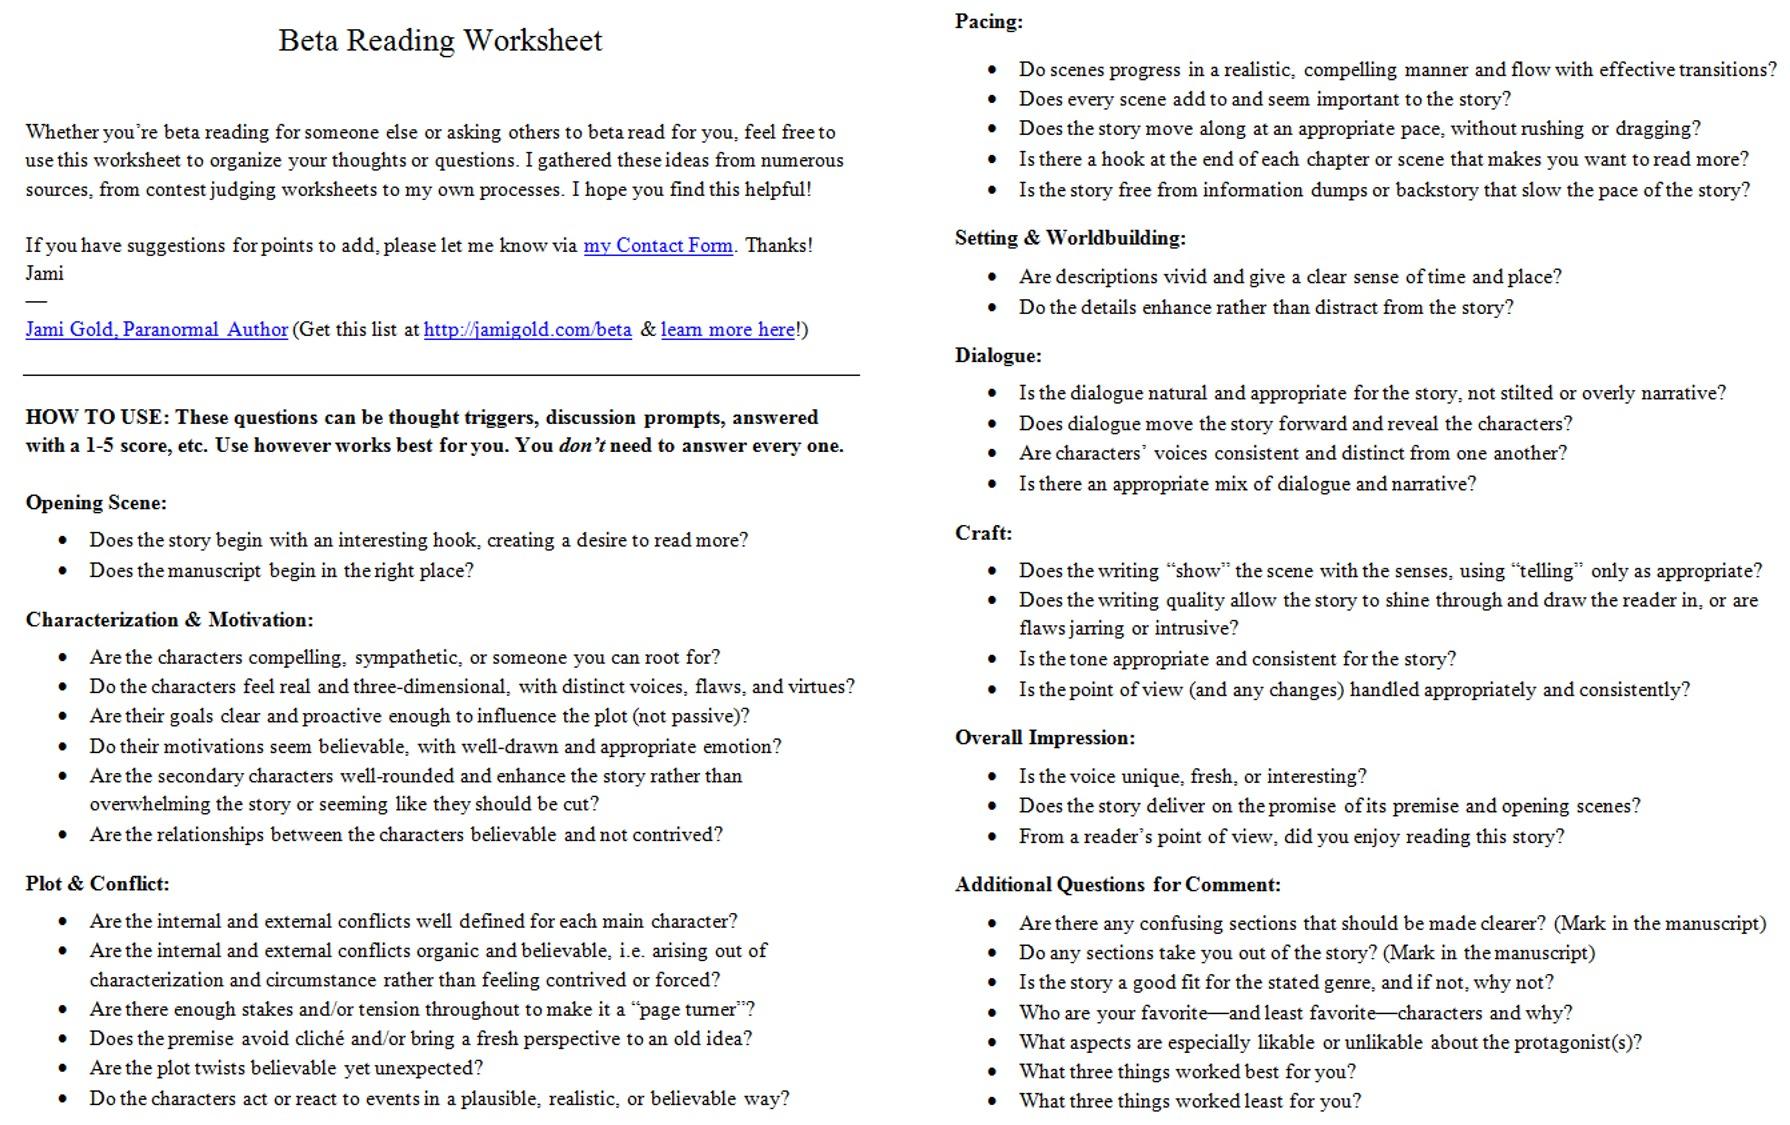 Aldiablosus  Personable Worksheets For Writers  Jami Gold Paranormal Author With Exquisite Screen Shot Of The Twopage Beta Reading Worksheet With Amazing Counting Money Worksheets St Grade Also Even Odd Functions Worksheet In Addition Forrest Gump Movie Worksheet Answers And Grammar And Punctuation Worksheets As Well As Solving For X Worksheet Additionally Teaching Multiplication Worksheets From Jamigoldcom With Aldiablosus  Exquisite Worksheets For Writers  Jami Gold Paranormal Author With Amazing Screen Shot Of The Twopage Beta Reading Worksheet And Personable Counting Money Worksheets St Grade Also Even Odd Functions Worksheet In Addition Forrest Gump Movie Worksheet Answers From Jamigoldcom